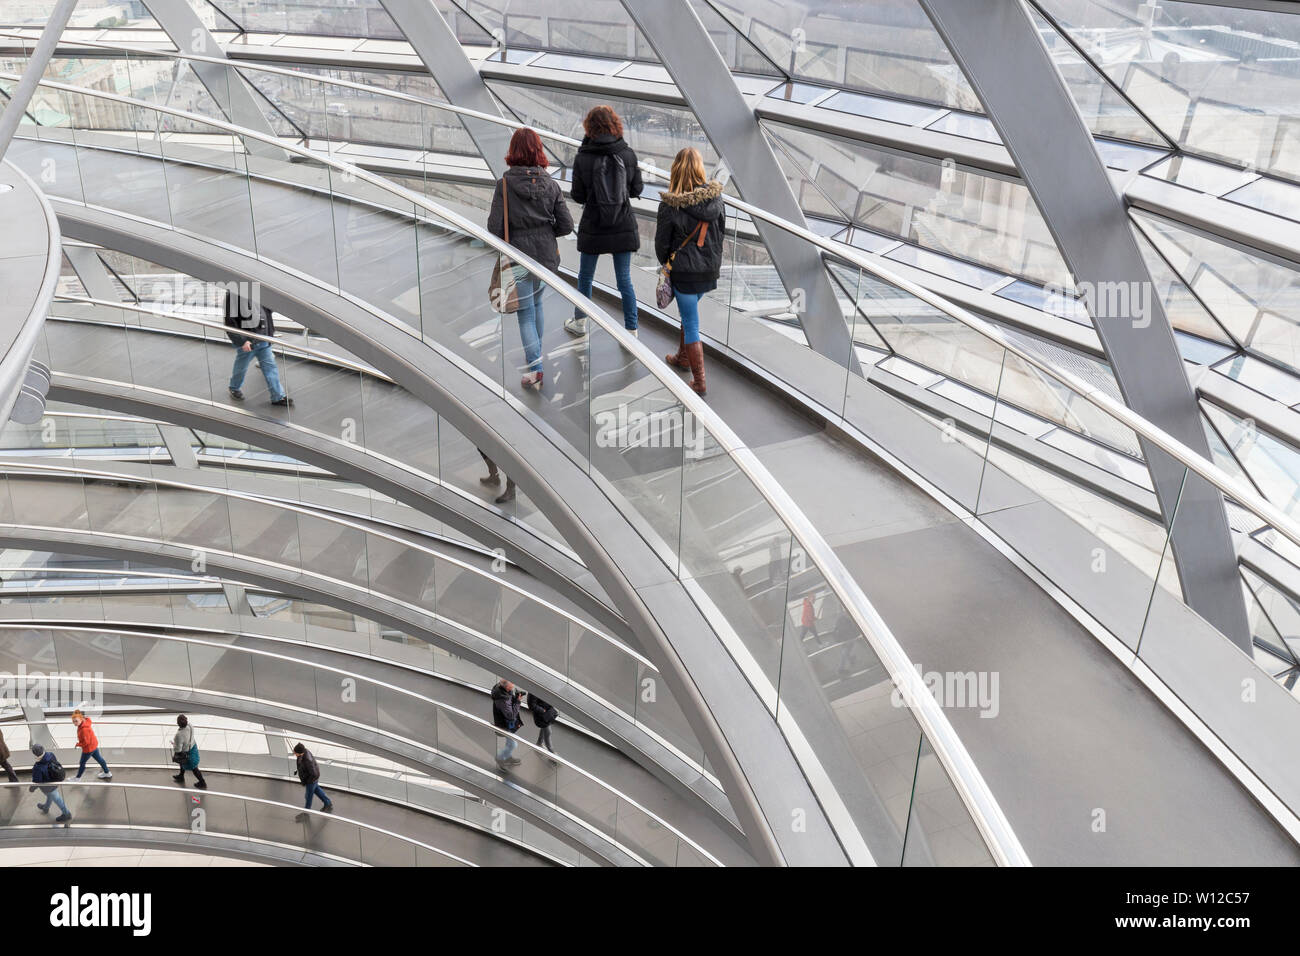 Several tourists walking at ramps inside the futuristic glass dome on top of the Reichstag (German parliament) building in Berlin, Germany. Stock Photo